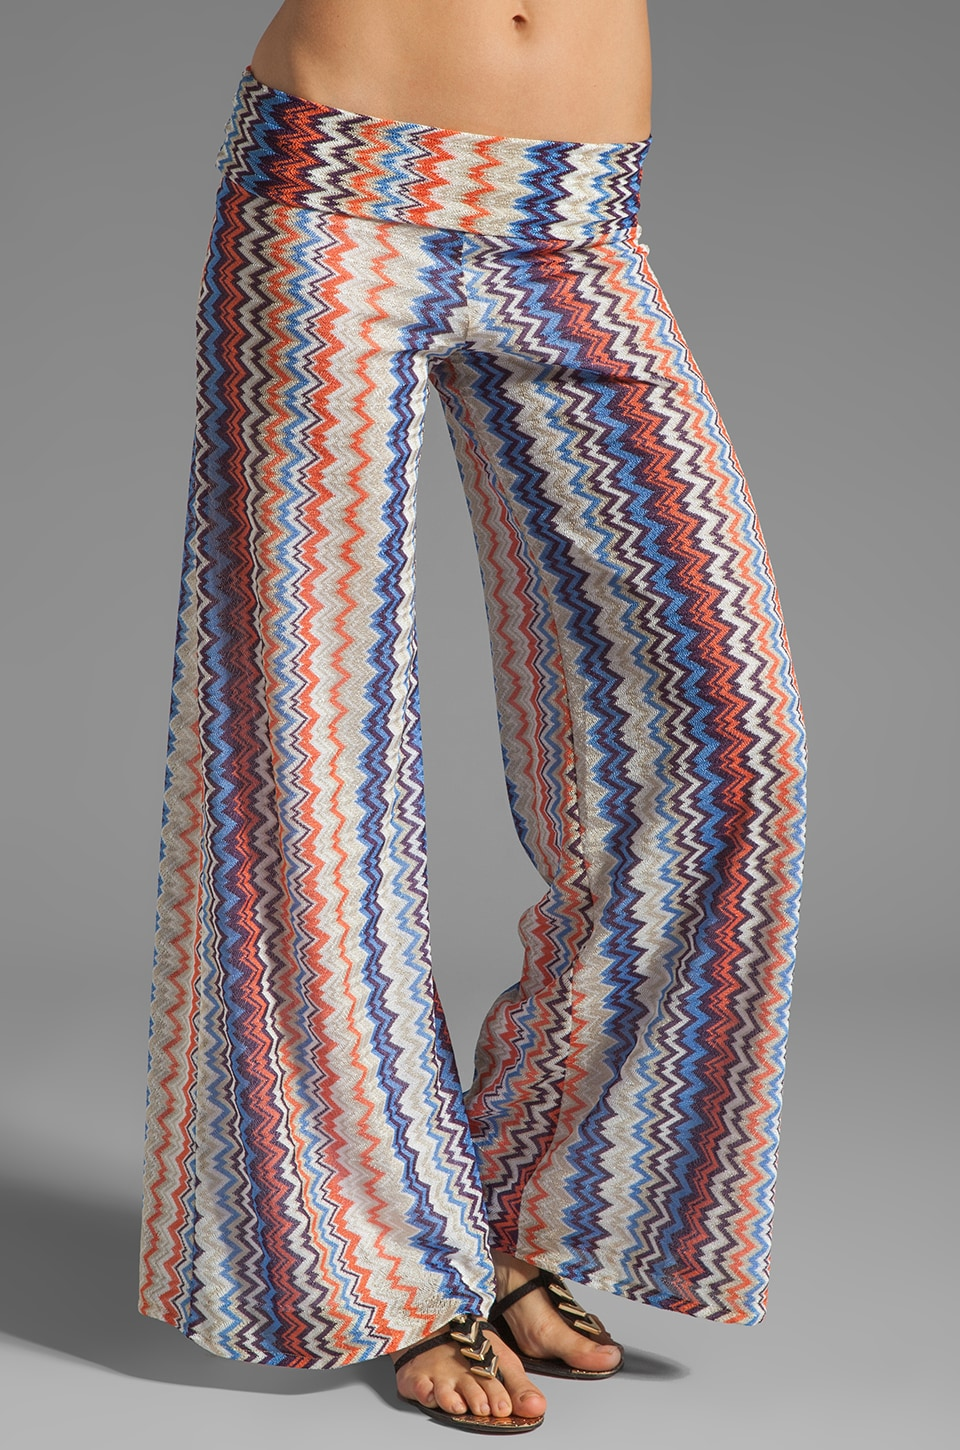 Karina Grimaldi Basic Knit Pants in Orange Blue Zig Zag